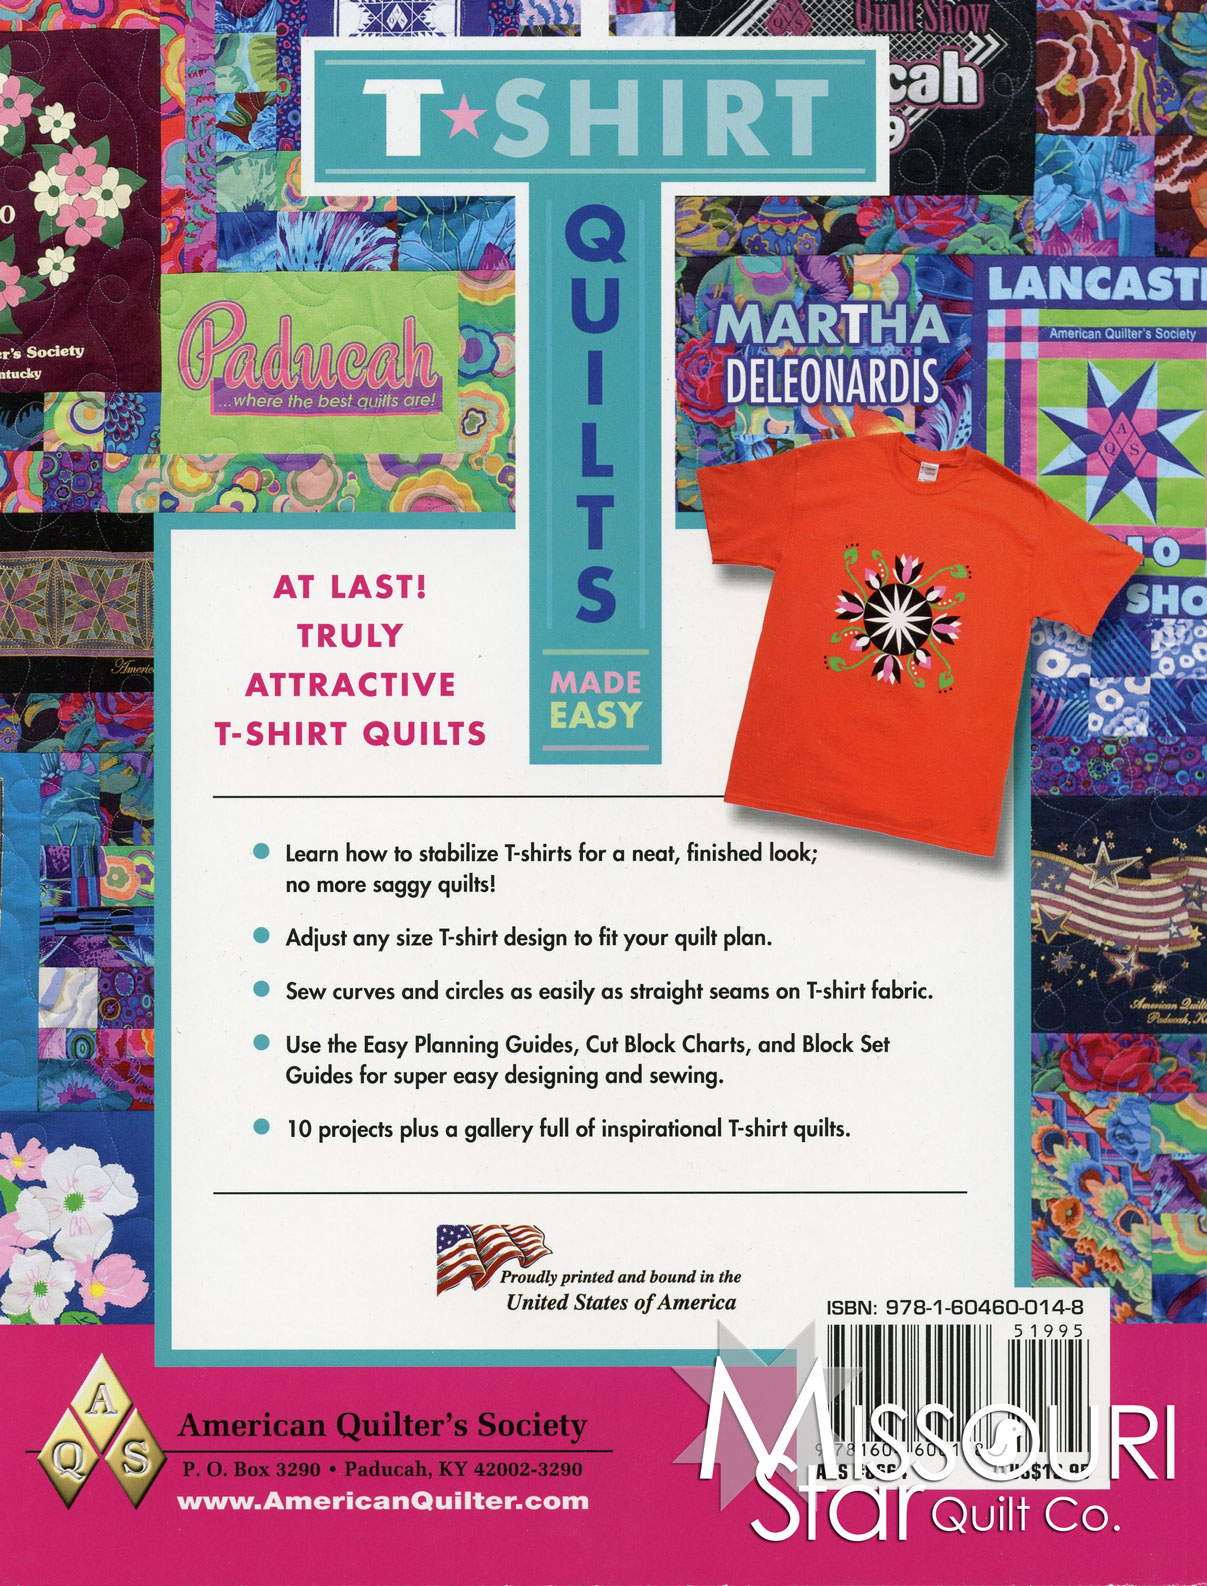 T Shirt Quilt Pattern Book : T-Shirt Quilts Made Easy Book - American Quilter s Society